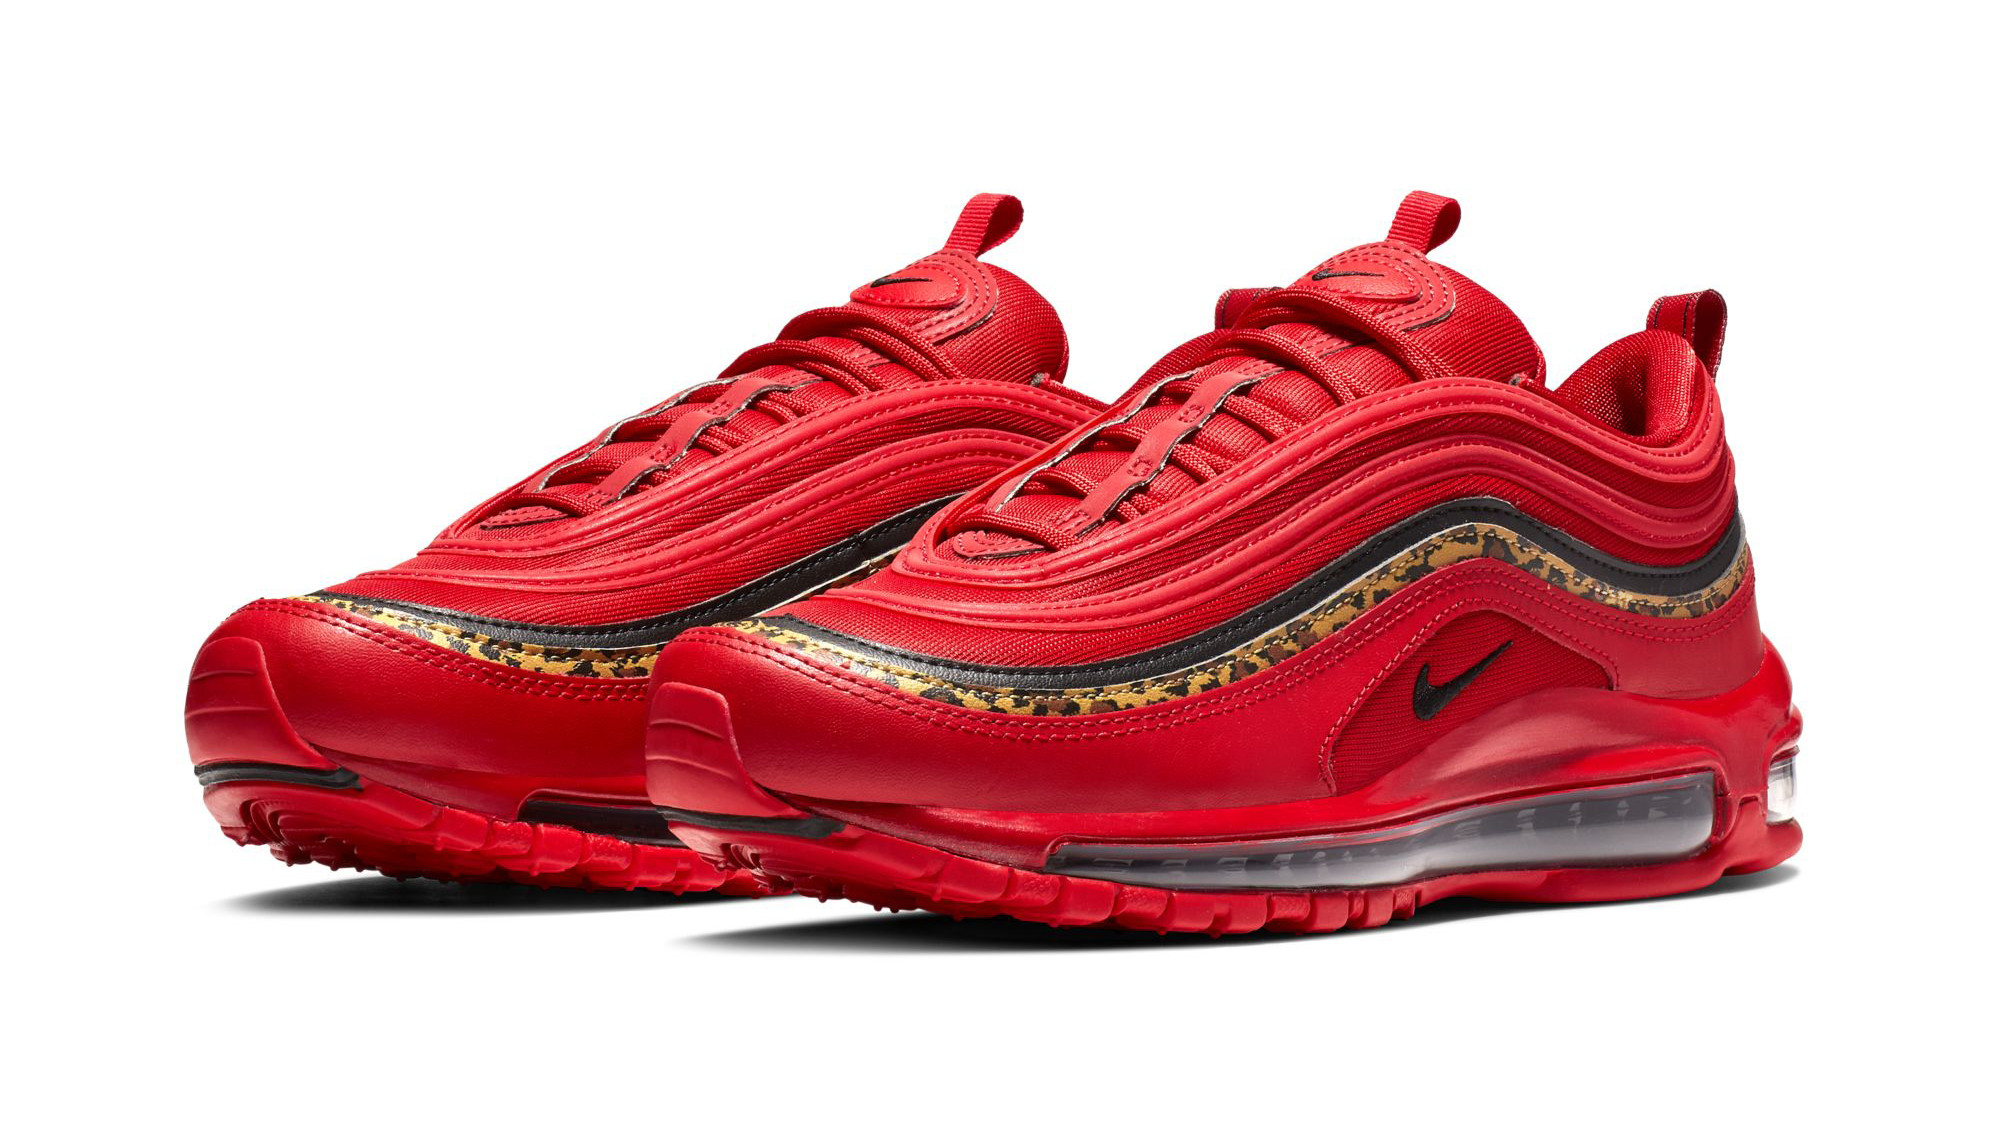 Nike Air Max 97 'Red/Leopard' Images | Sole Collector